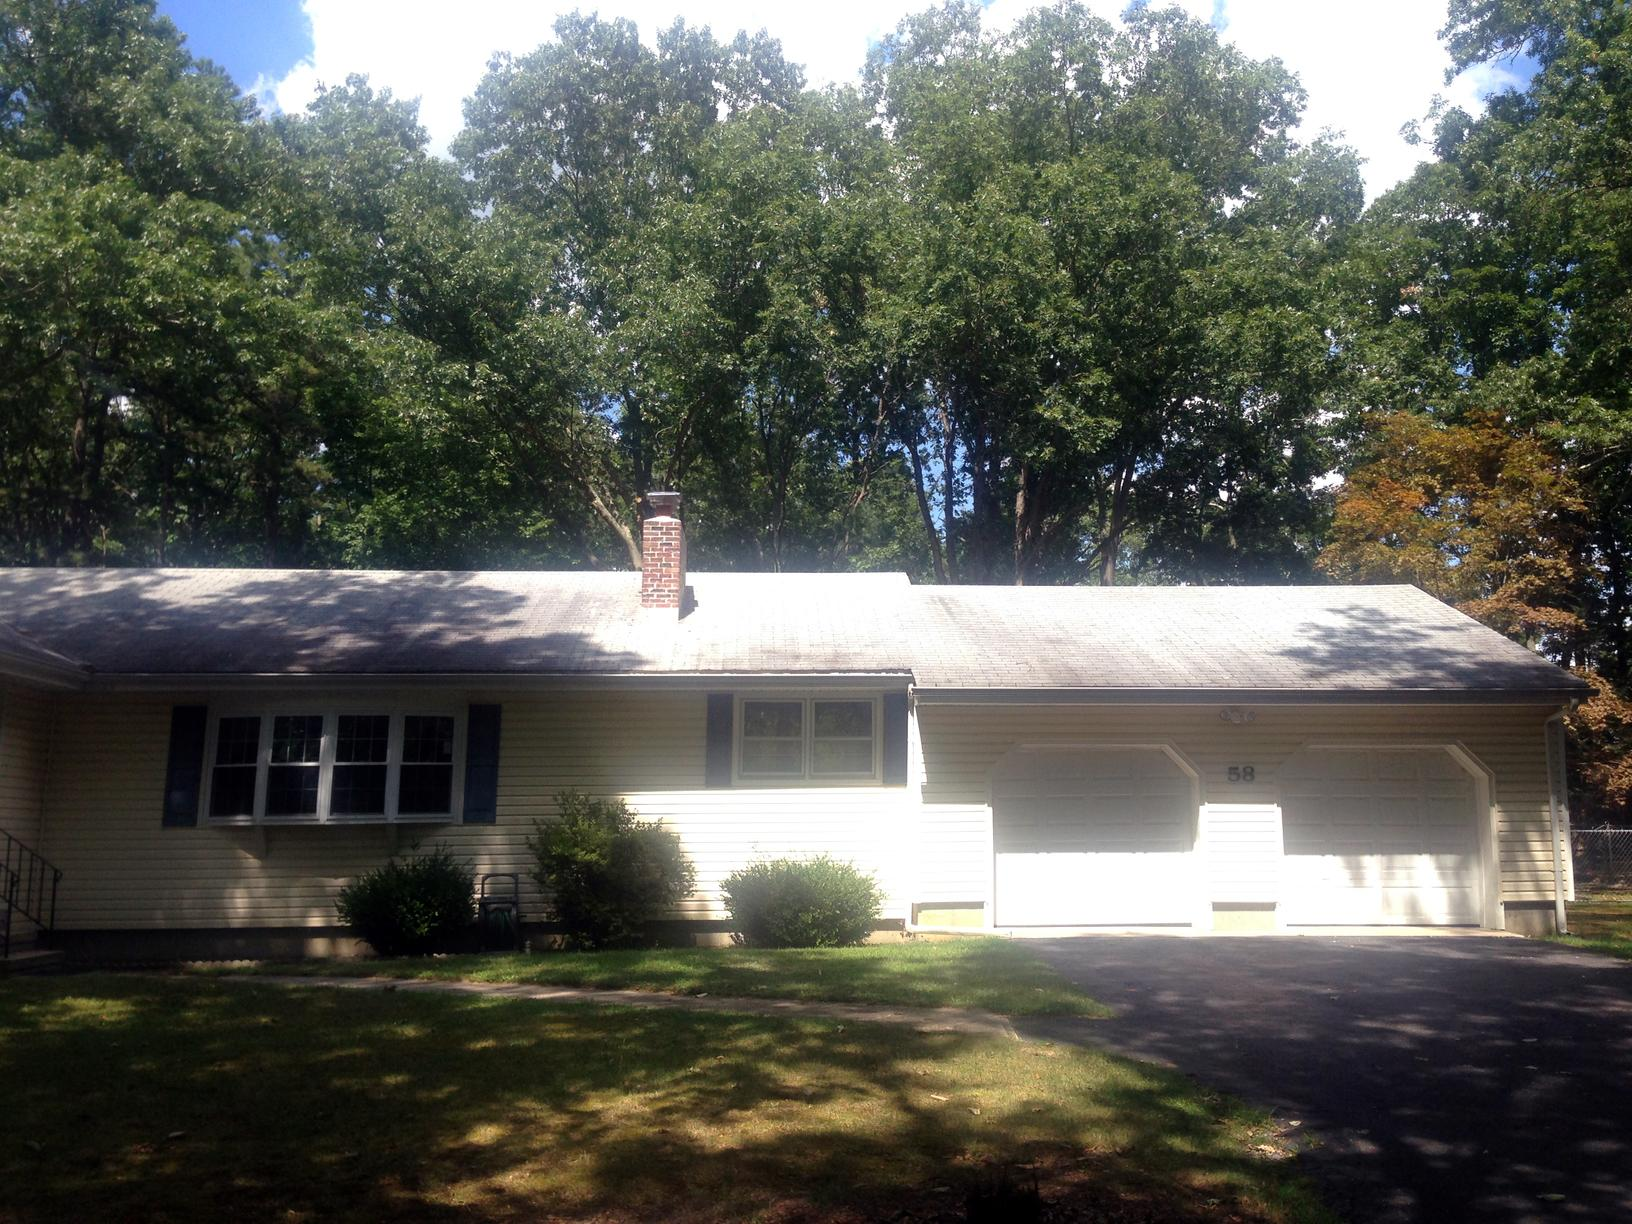 Freehold NJ Roof Replacement Amber Roof - Before Photo